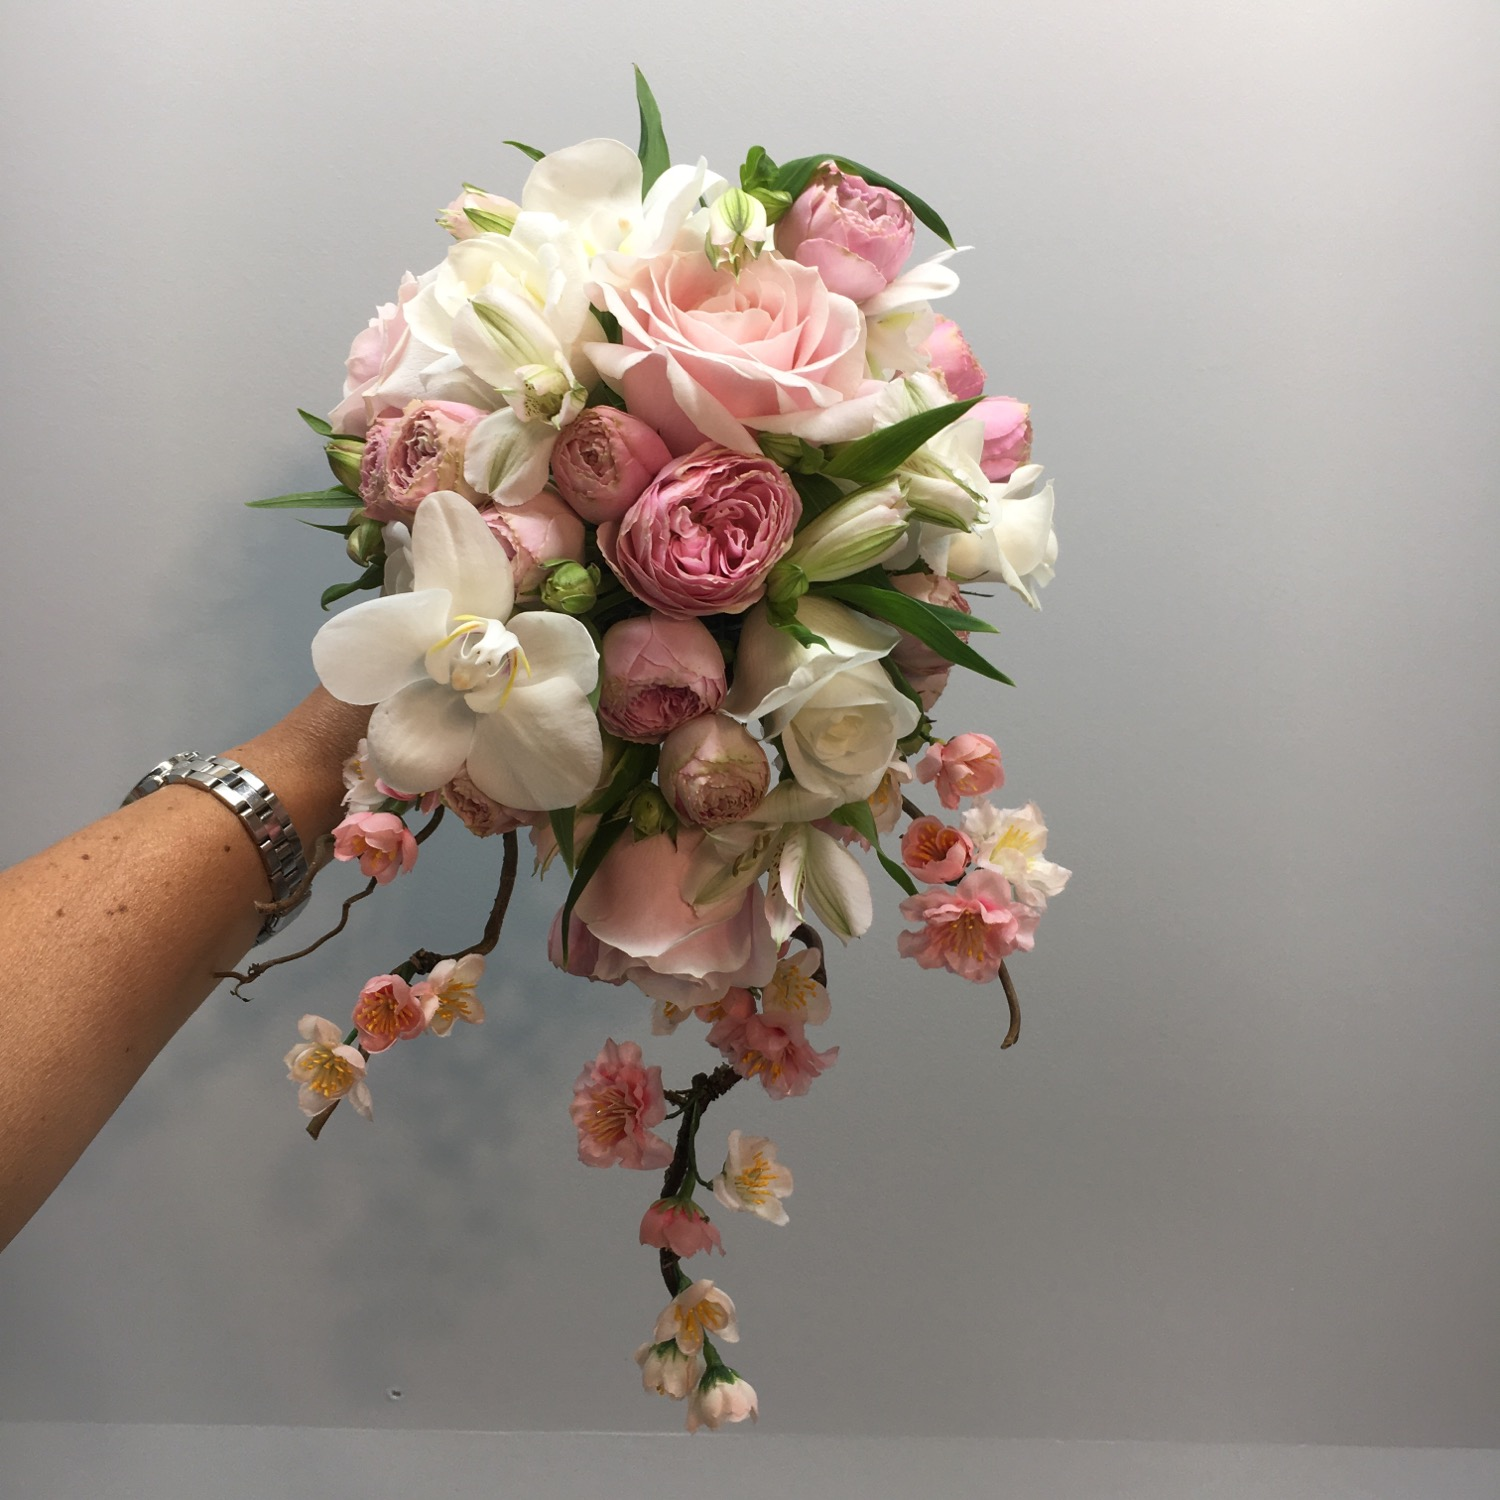 Blush and blossom wedding bouquet